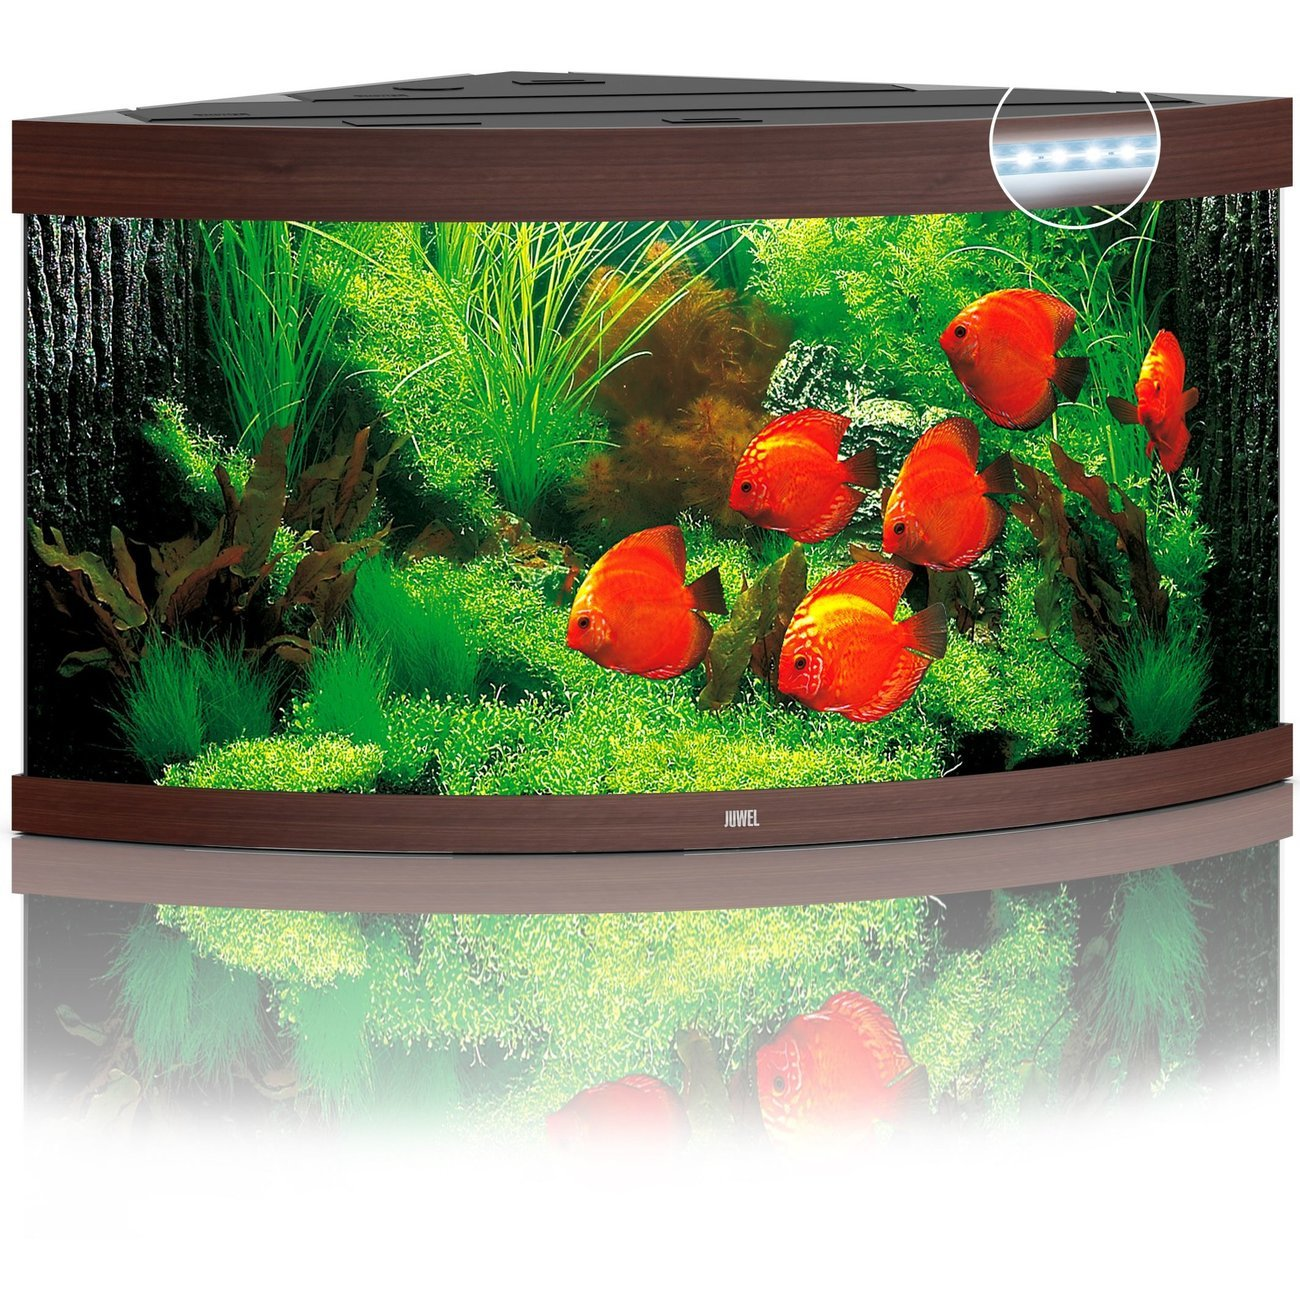 Juwel Trigon 350 LED Aquarium, Bild 2